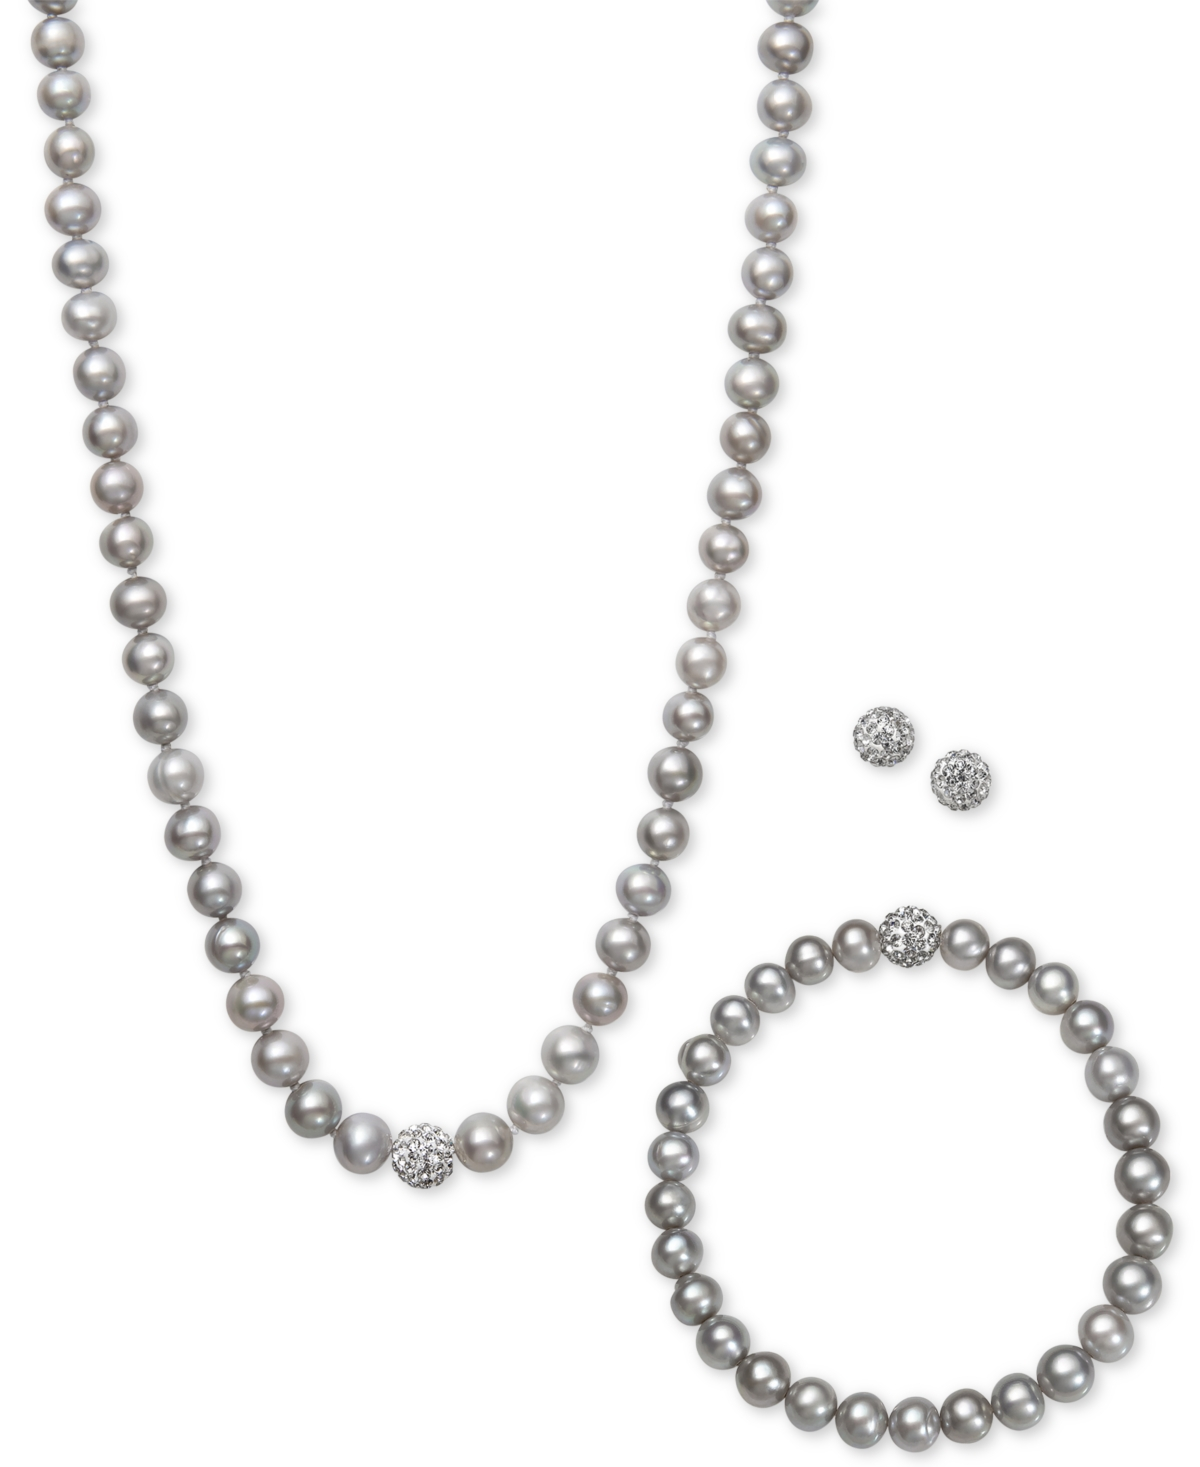 White, Gray or Pink Cultured Freshwater Pearl (7mm) & Crystal Collar Jewelry Set